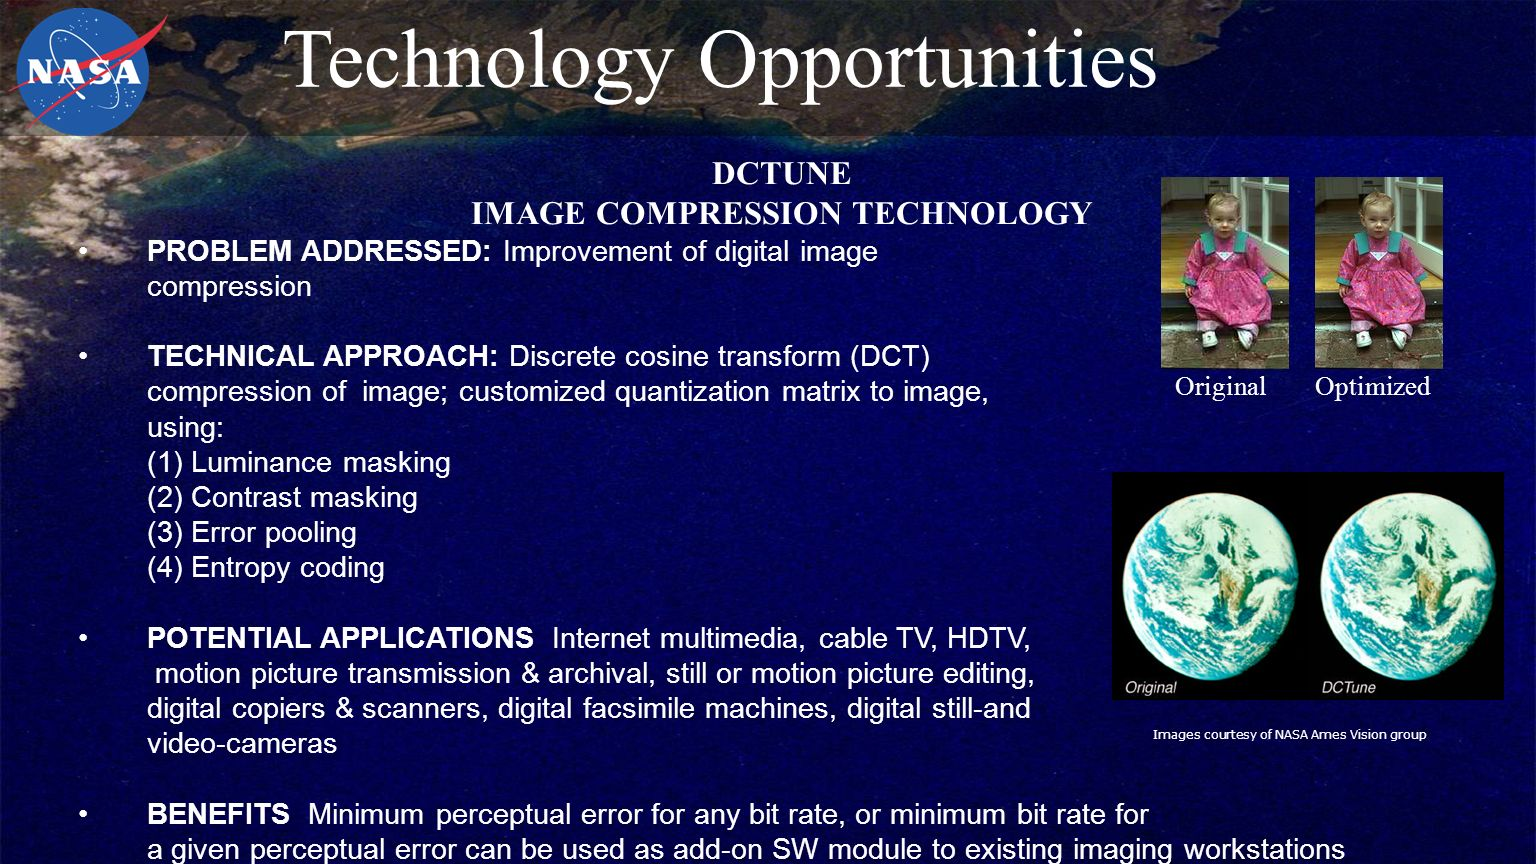 PROBLEM ADDRESSED: Improvement of digital image compression TECHNICAL APPROACH: Discrete cosine transform (DCT) compression of image; customized quantization matrix to image, using: (1) Luminance masking (2) Contrast masking (3) Error pooling (4) Entropy coding POTENTIAL APPLICATIONS Internet multimedia, cable TV, HDTV, motion picture transmission & archival, still or motion picture editing, digital copiers & scanners, digital facsimile machines, digital still-and video-cameras BENEFITS Minimum perceptual error for any bit rate, or minimum bit rate for a given perceptual error can be used as add-on SW module to existing imaging workstations Images courtesy of NASA Ames Vision group OriginalOptimized Technology Opportunities DCTUNE IMAGE COMPRESSION TECHNOLOGY